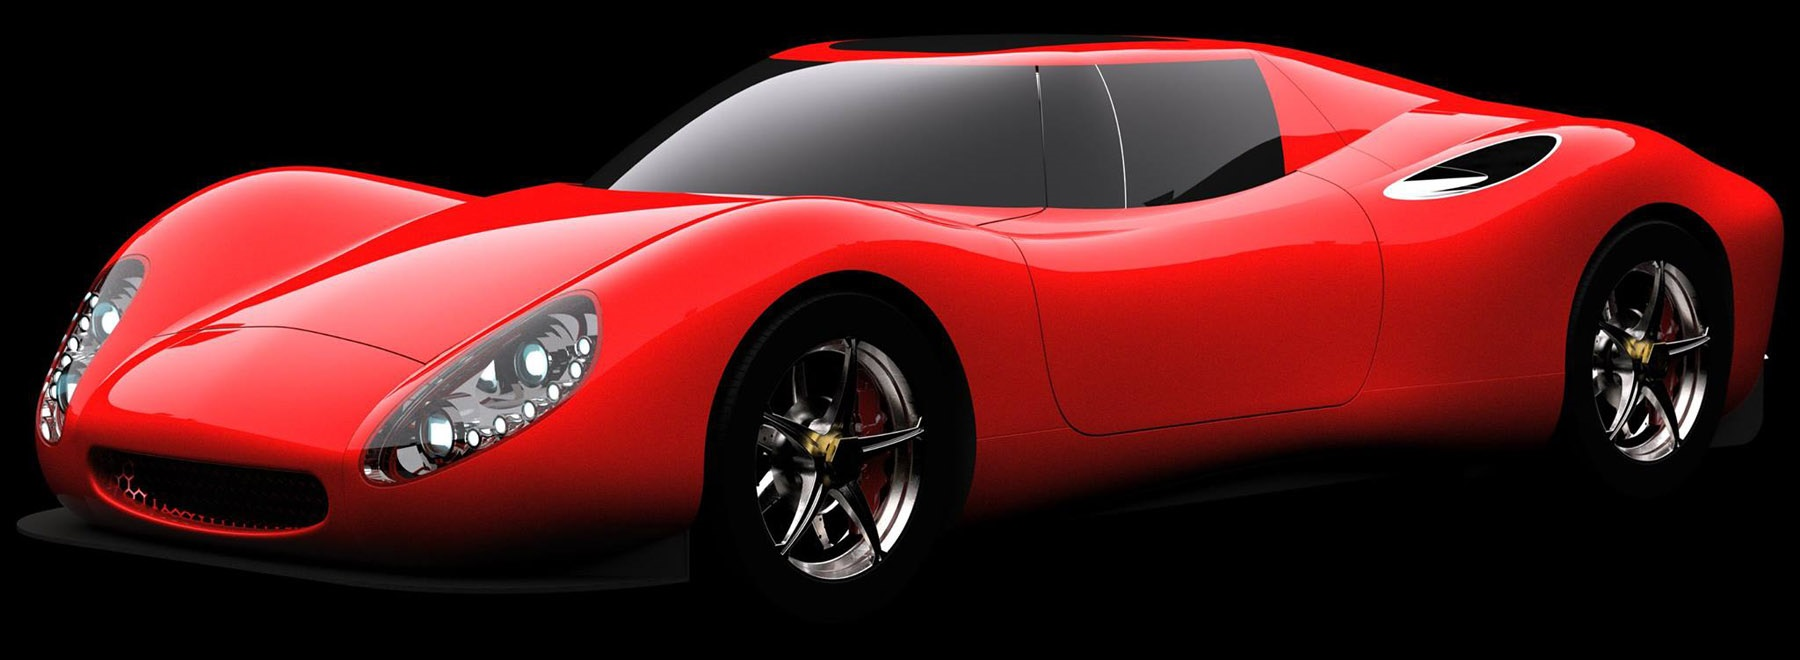 fastest-car-world-corbellati-missile-hypercar